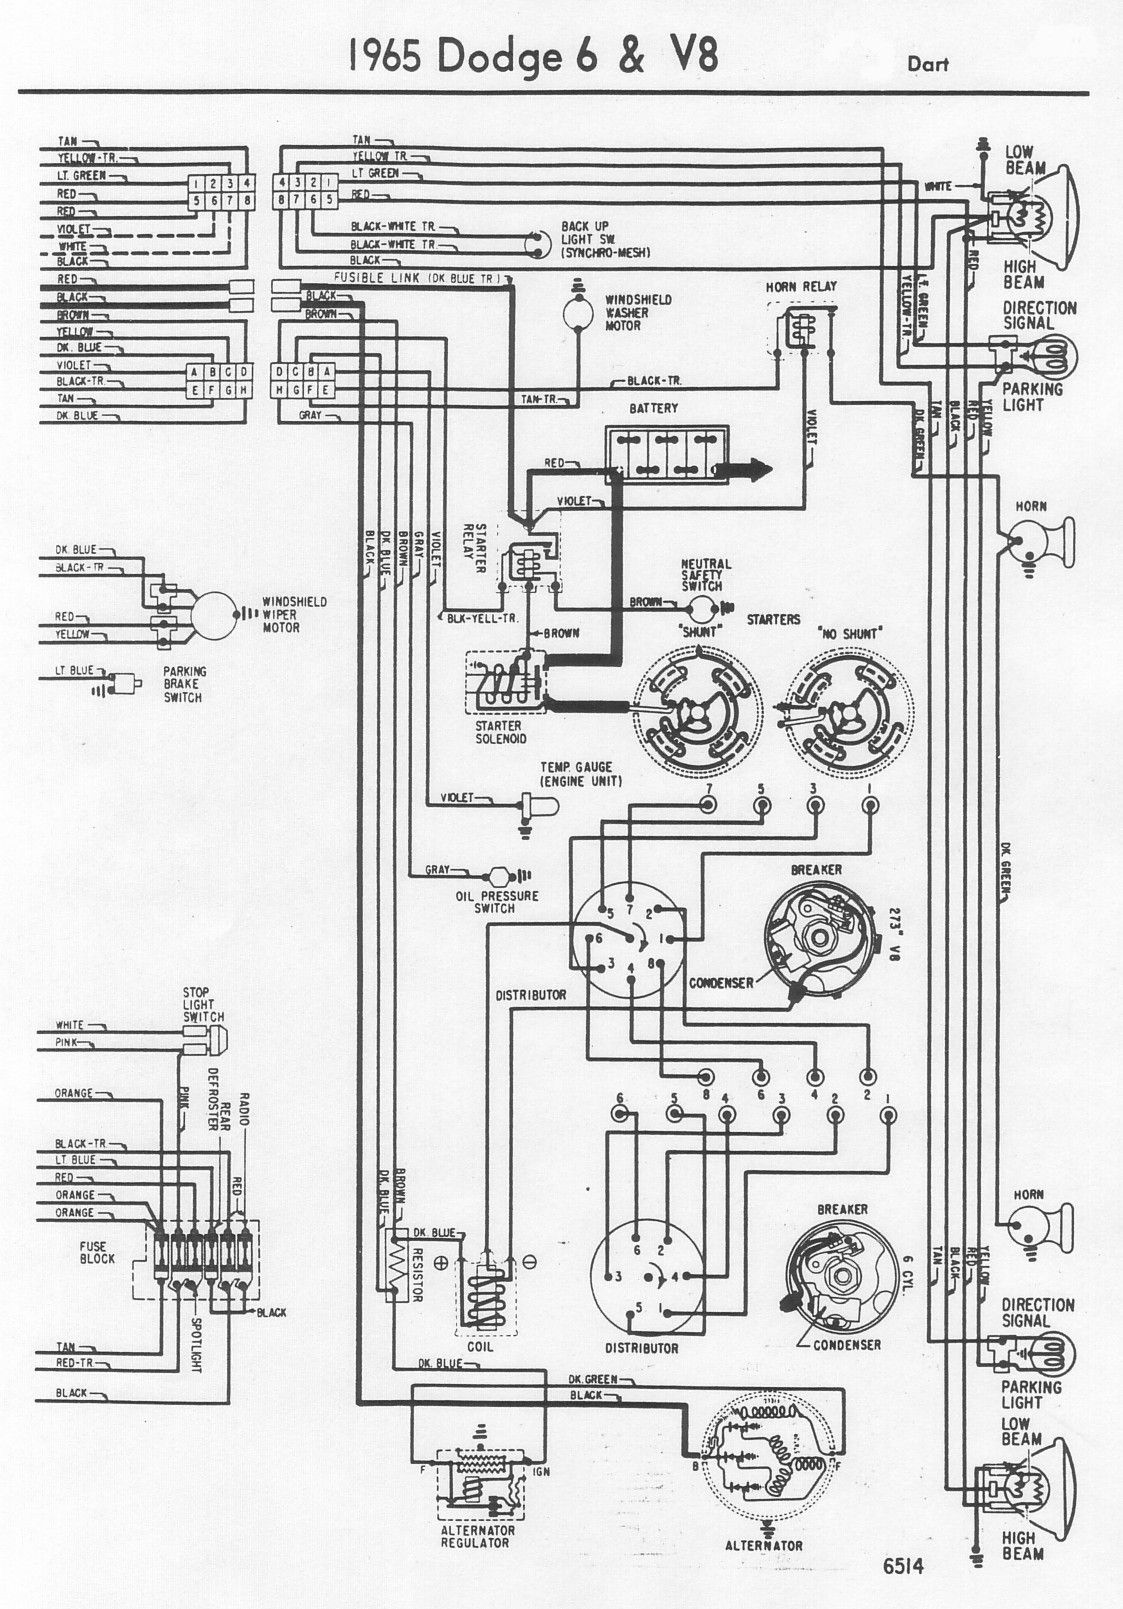 medium resolution of 1965 dodge wiring diagram wiring diagram show 1965 dodge coronet wiring diagram